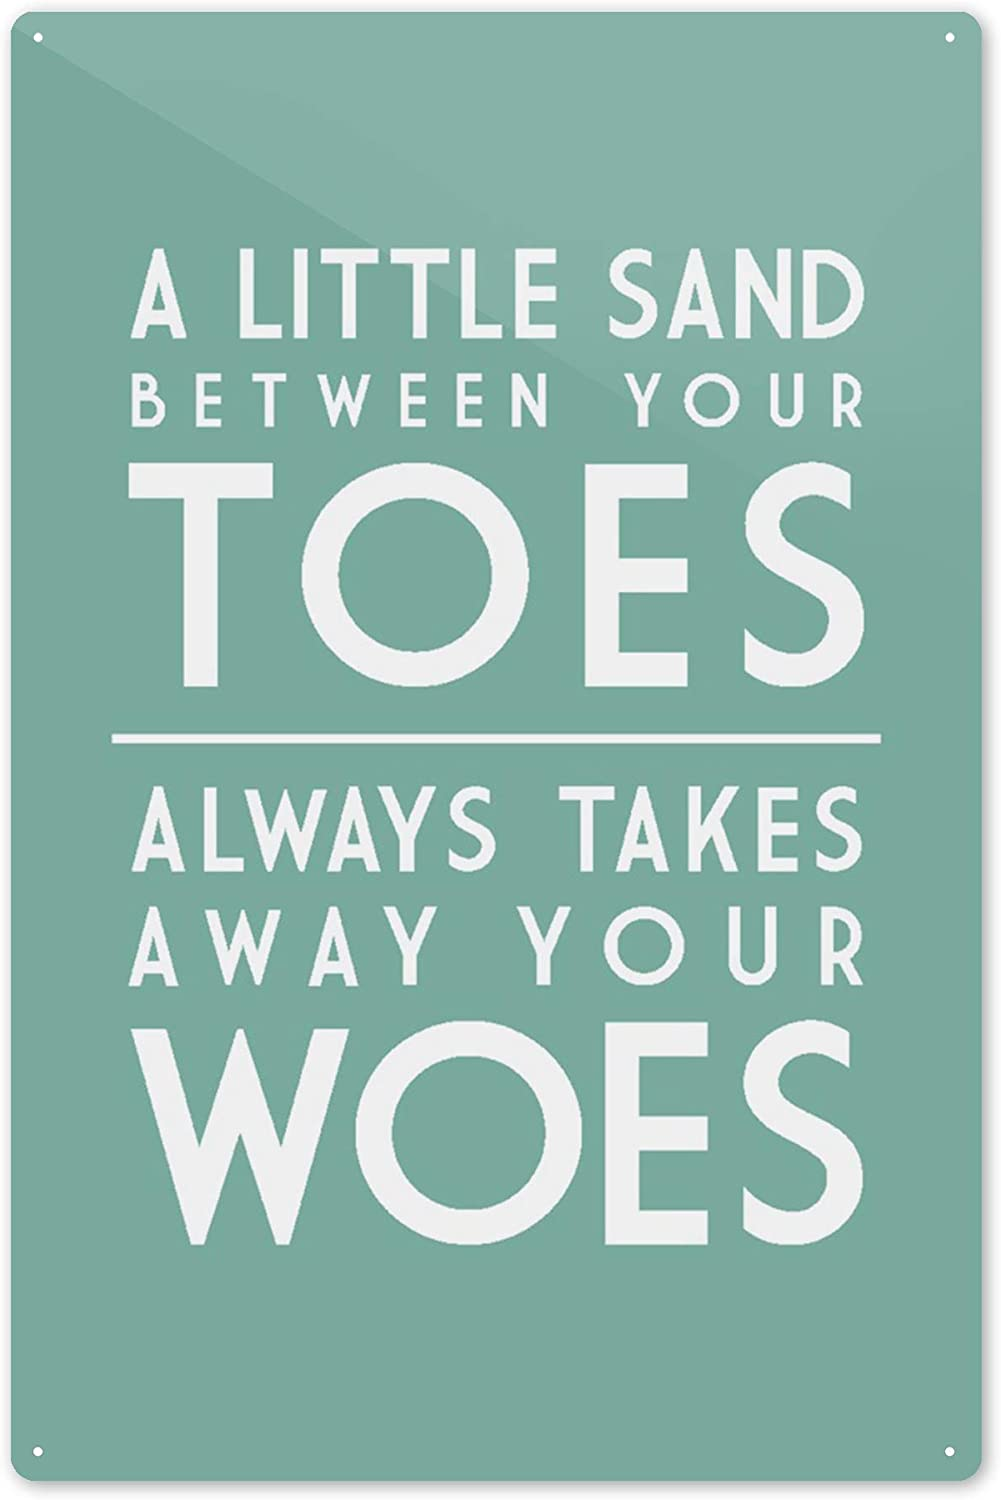 16x24 SIGNED Print Master Art Print - Wall Decor Poster Simply Said 76140 A Little Sand Between Your Toes